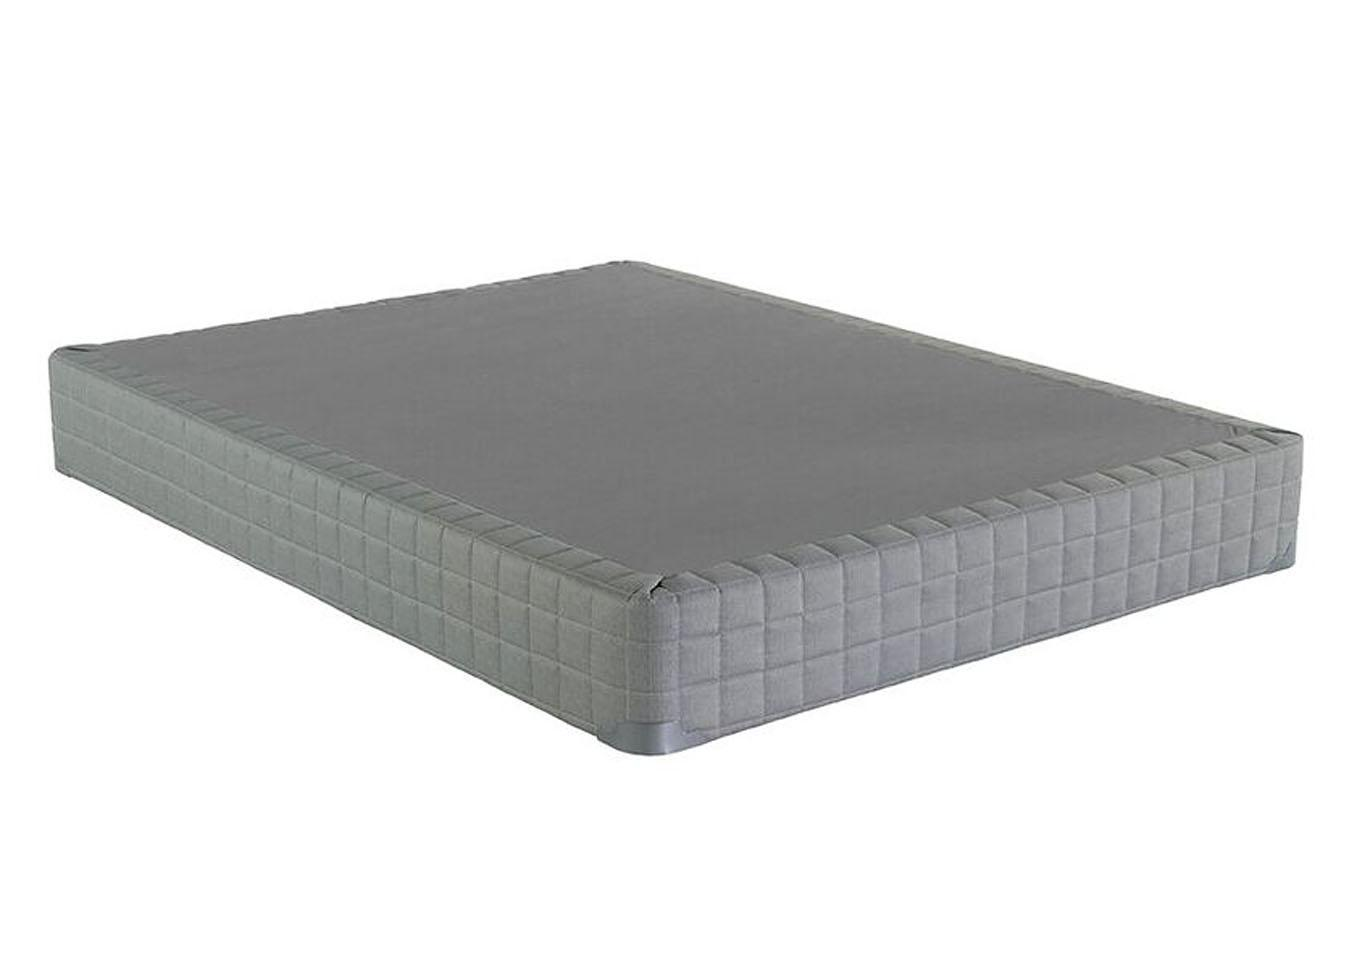 Pure Gel 10 Inch Memory Foam Mattress And Foundation - Cal King,Instore